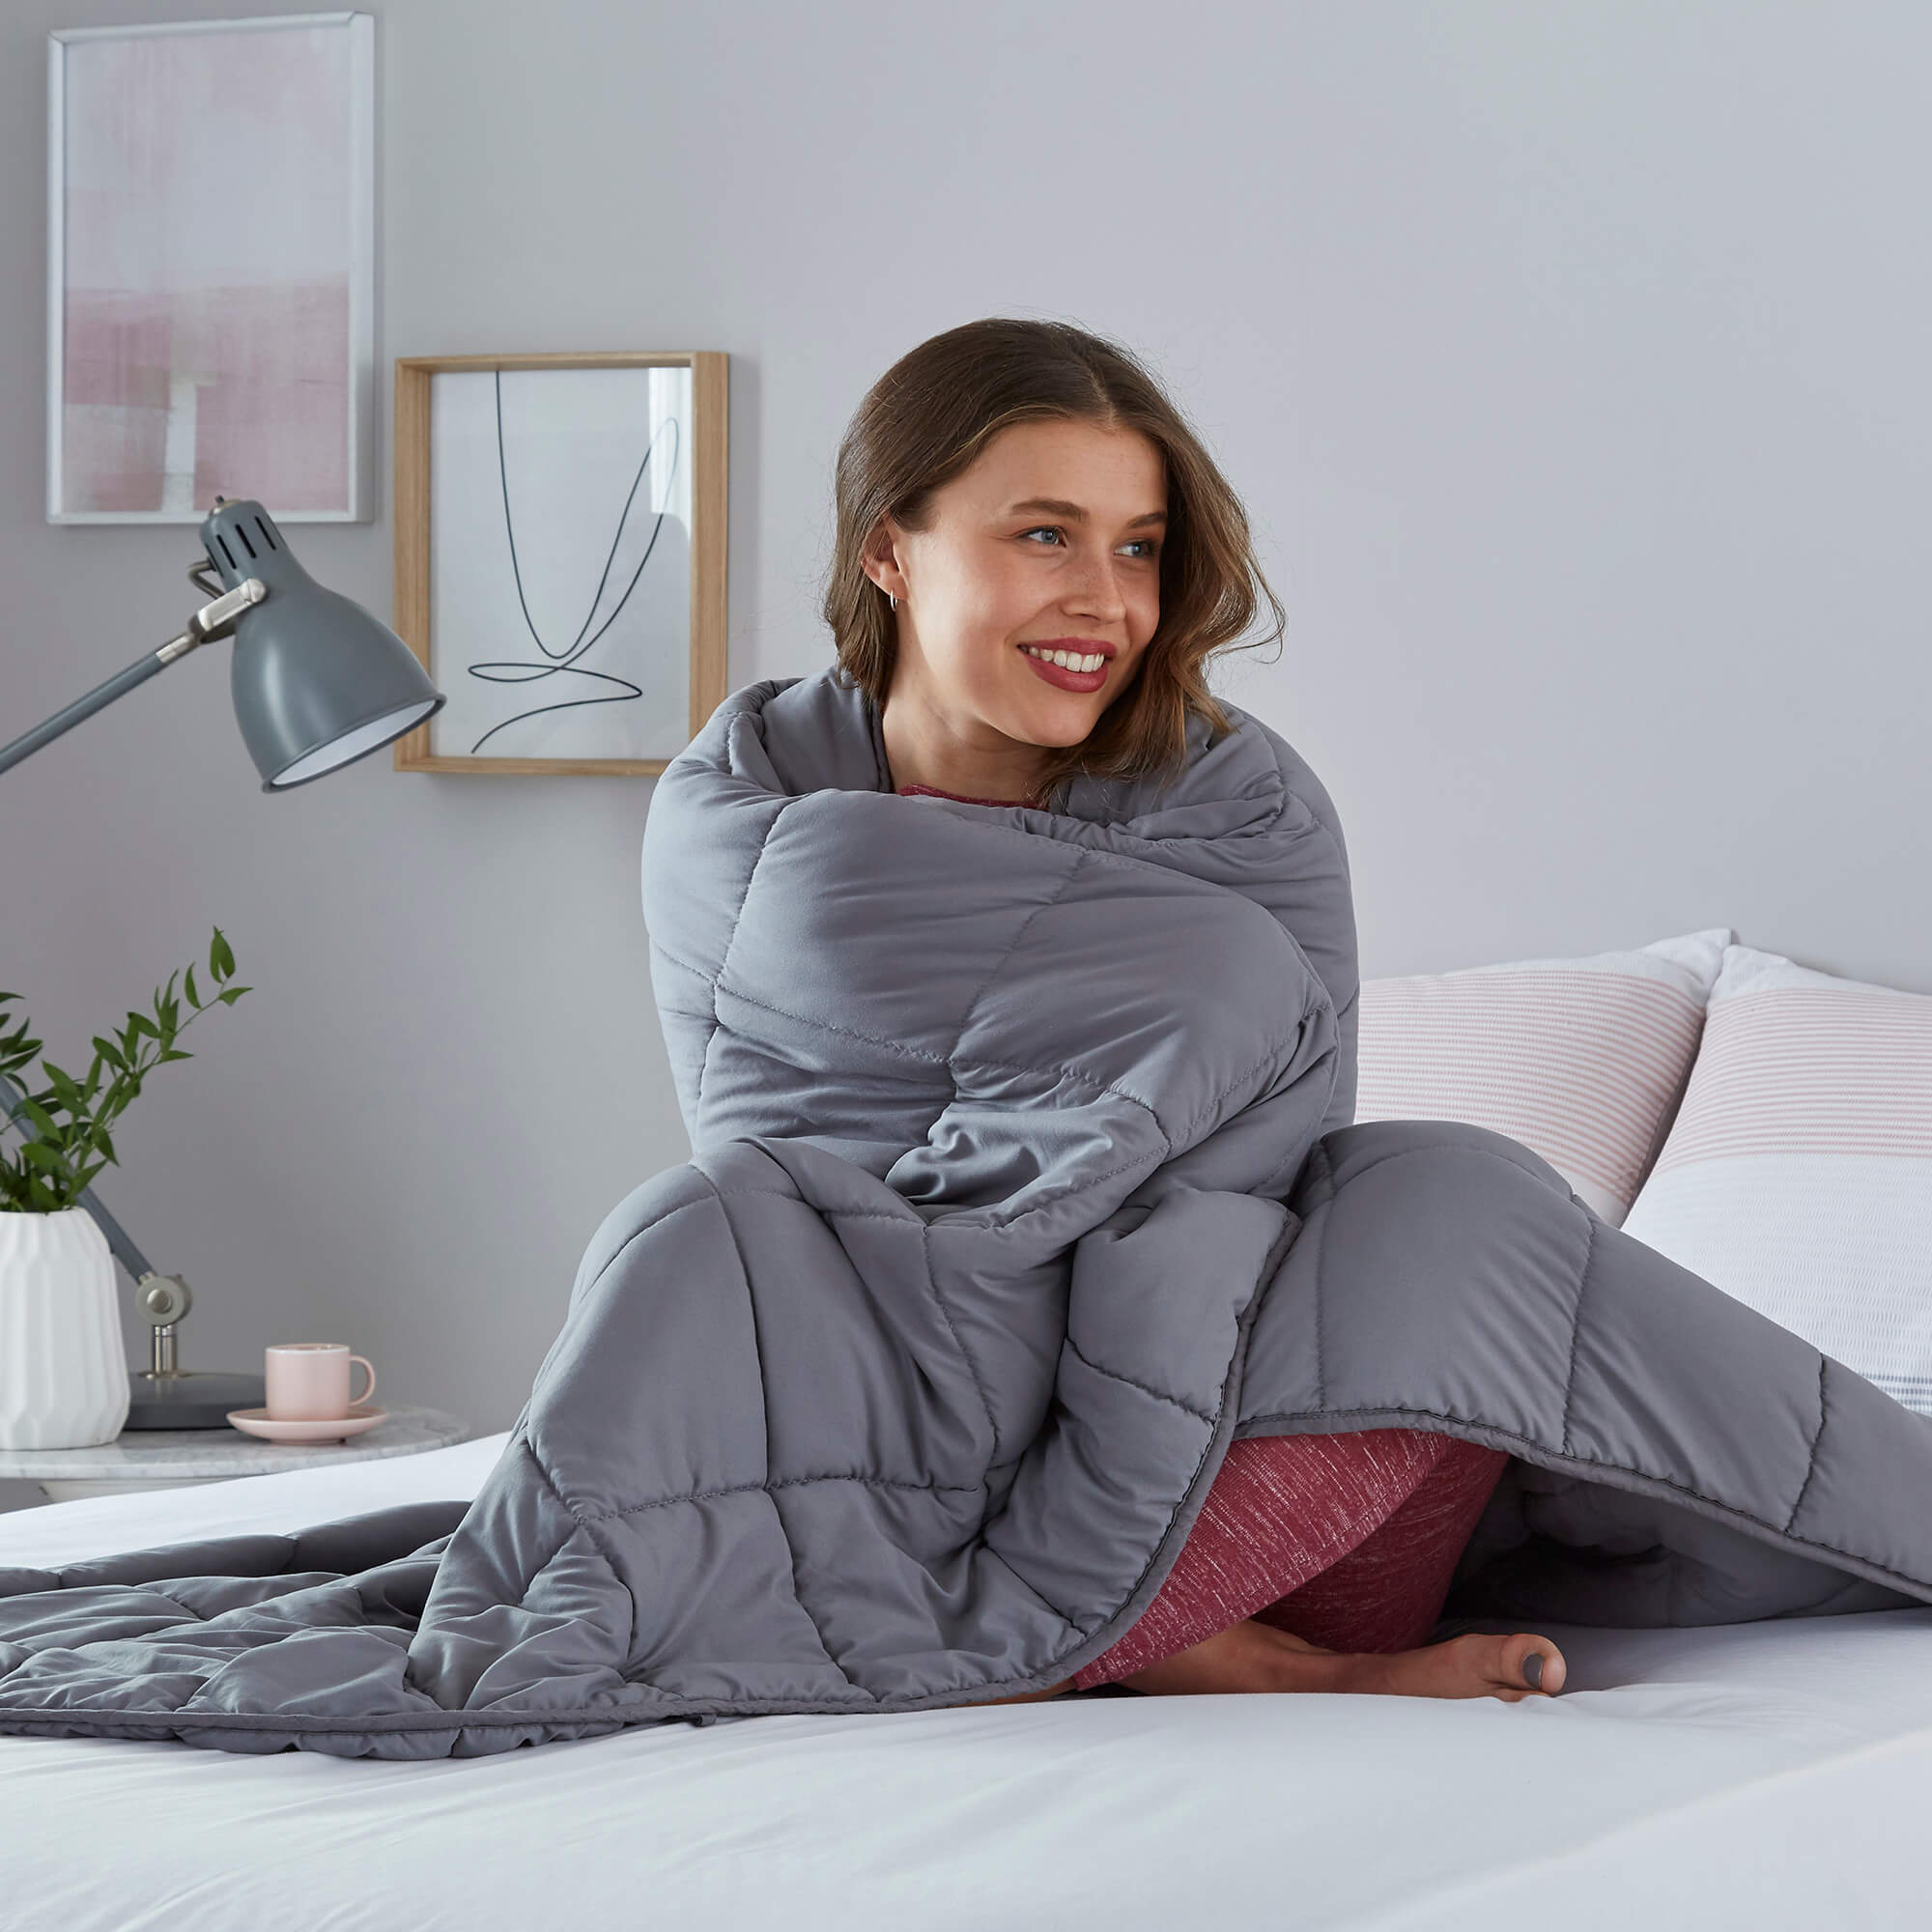 A woman wrapped in a weighted blanket